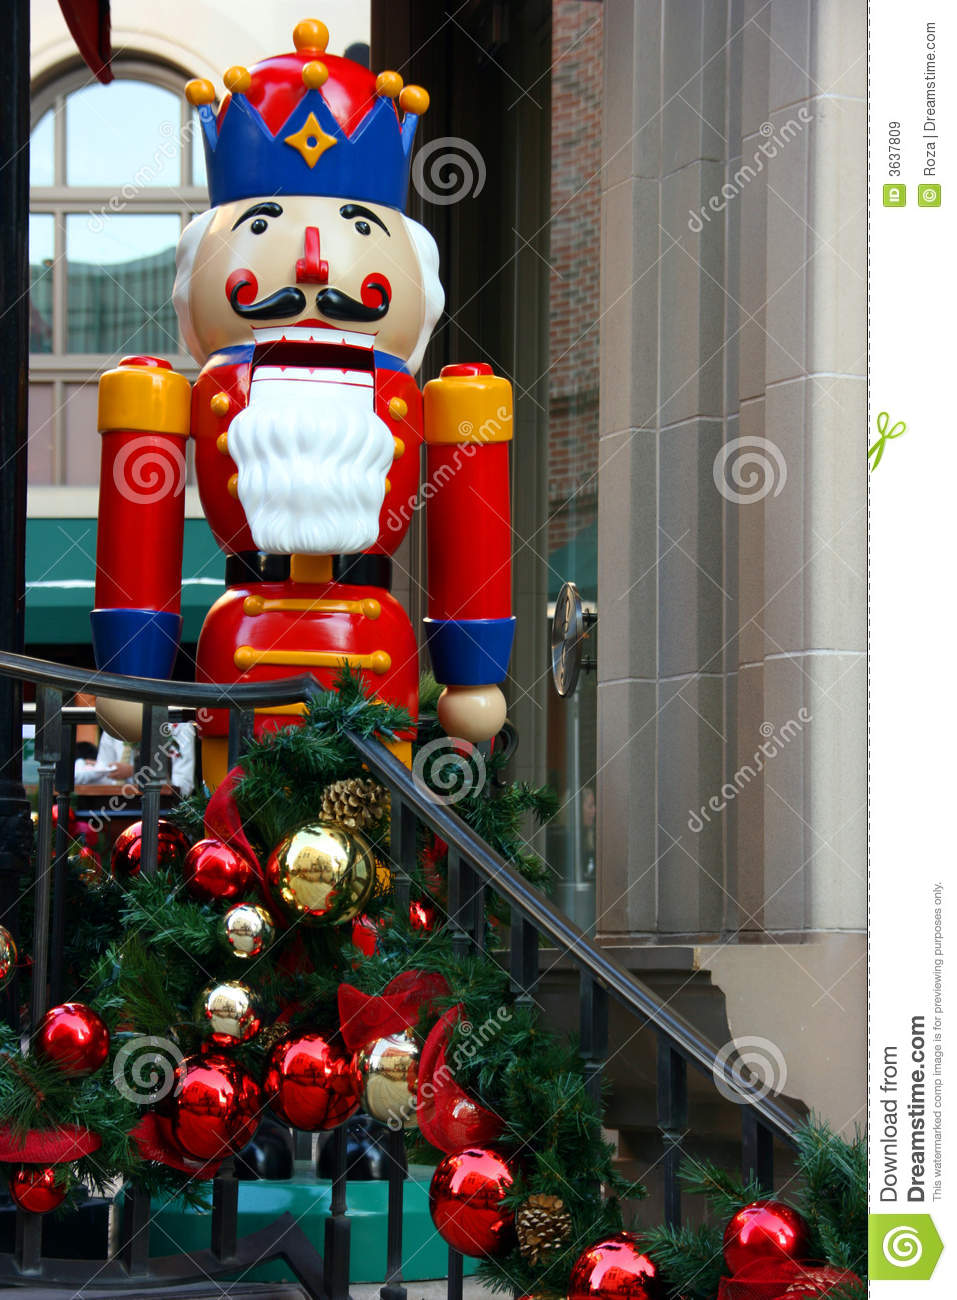 christmas decorations and nutcracker - Nutcracker Christmas Decorations